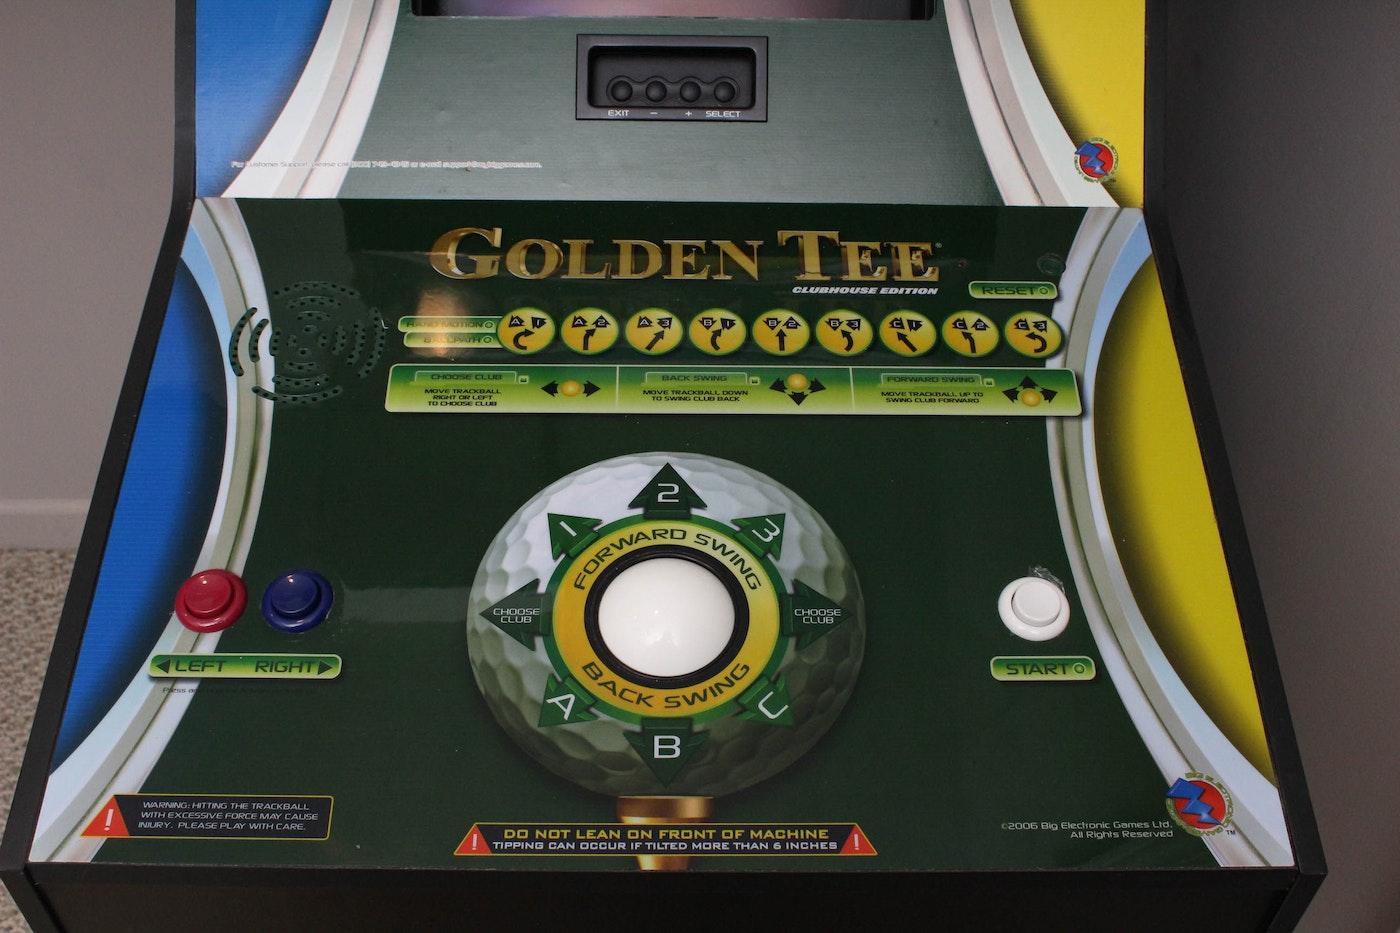 Golden tee Clubhouse edition manual